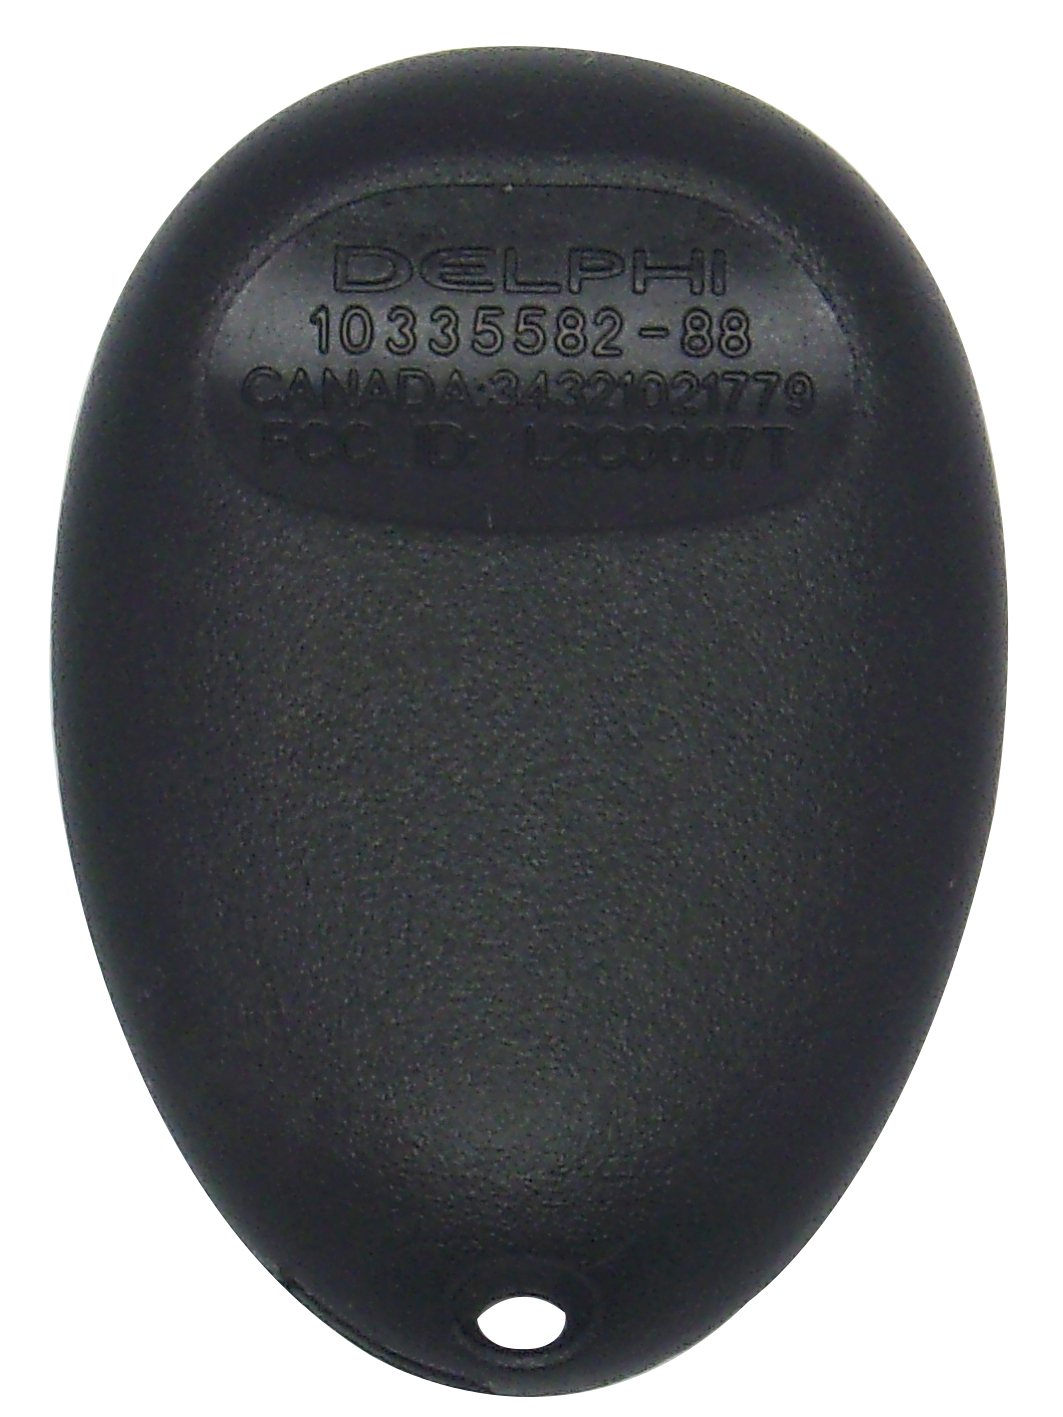 Keyless Entry Car Remote - 3 Button